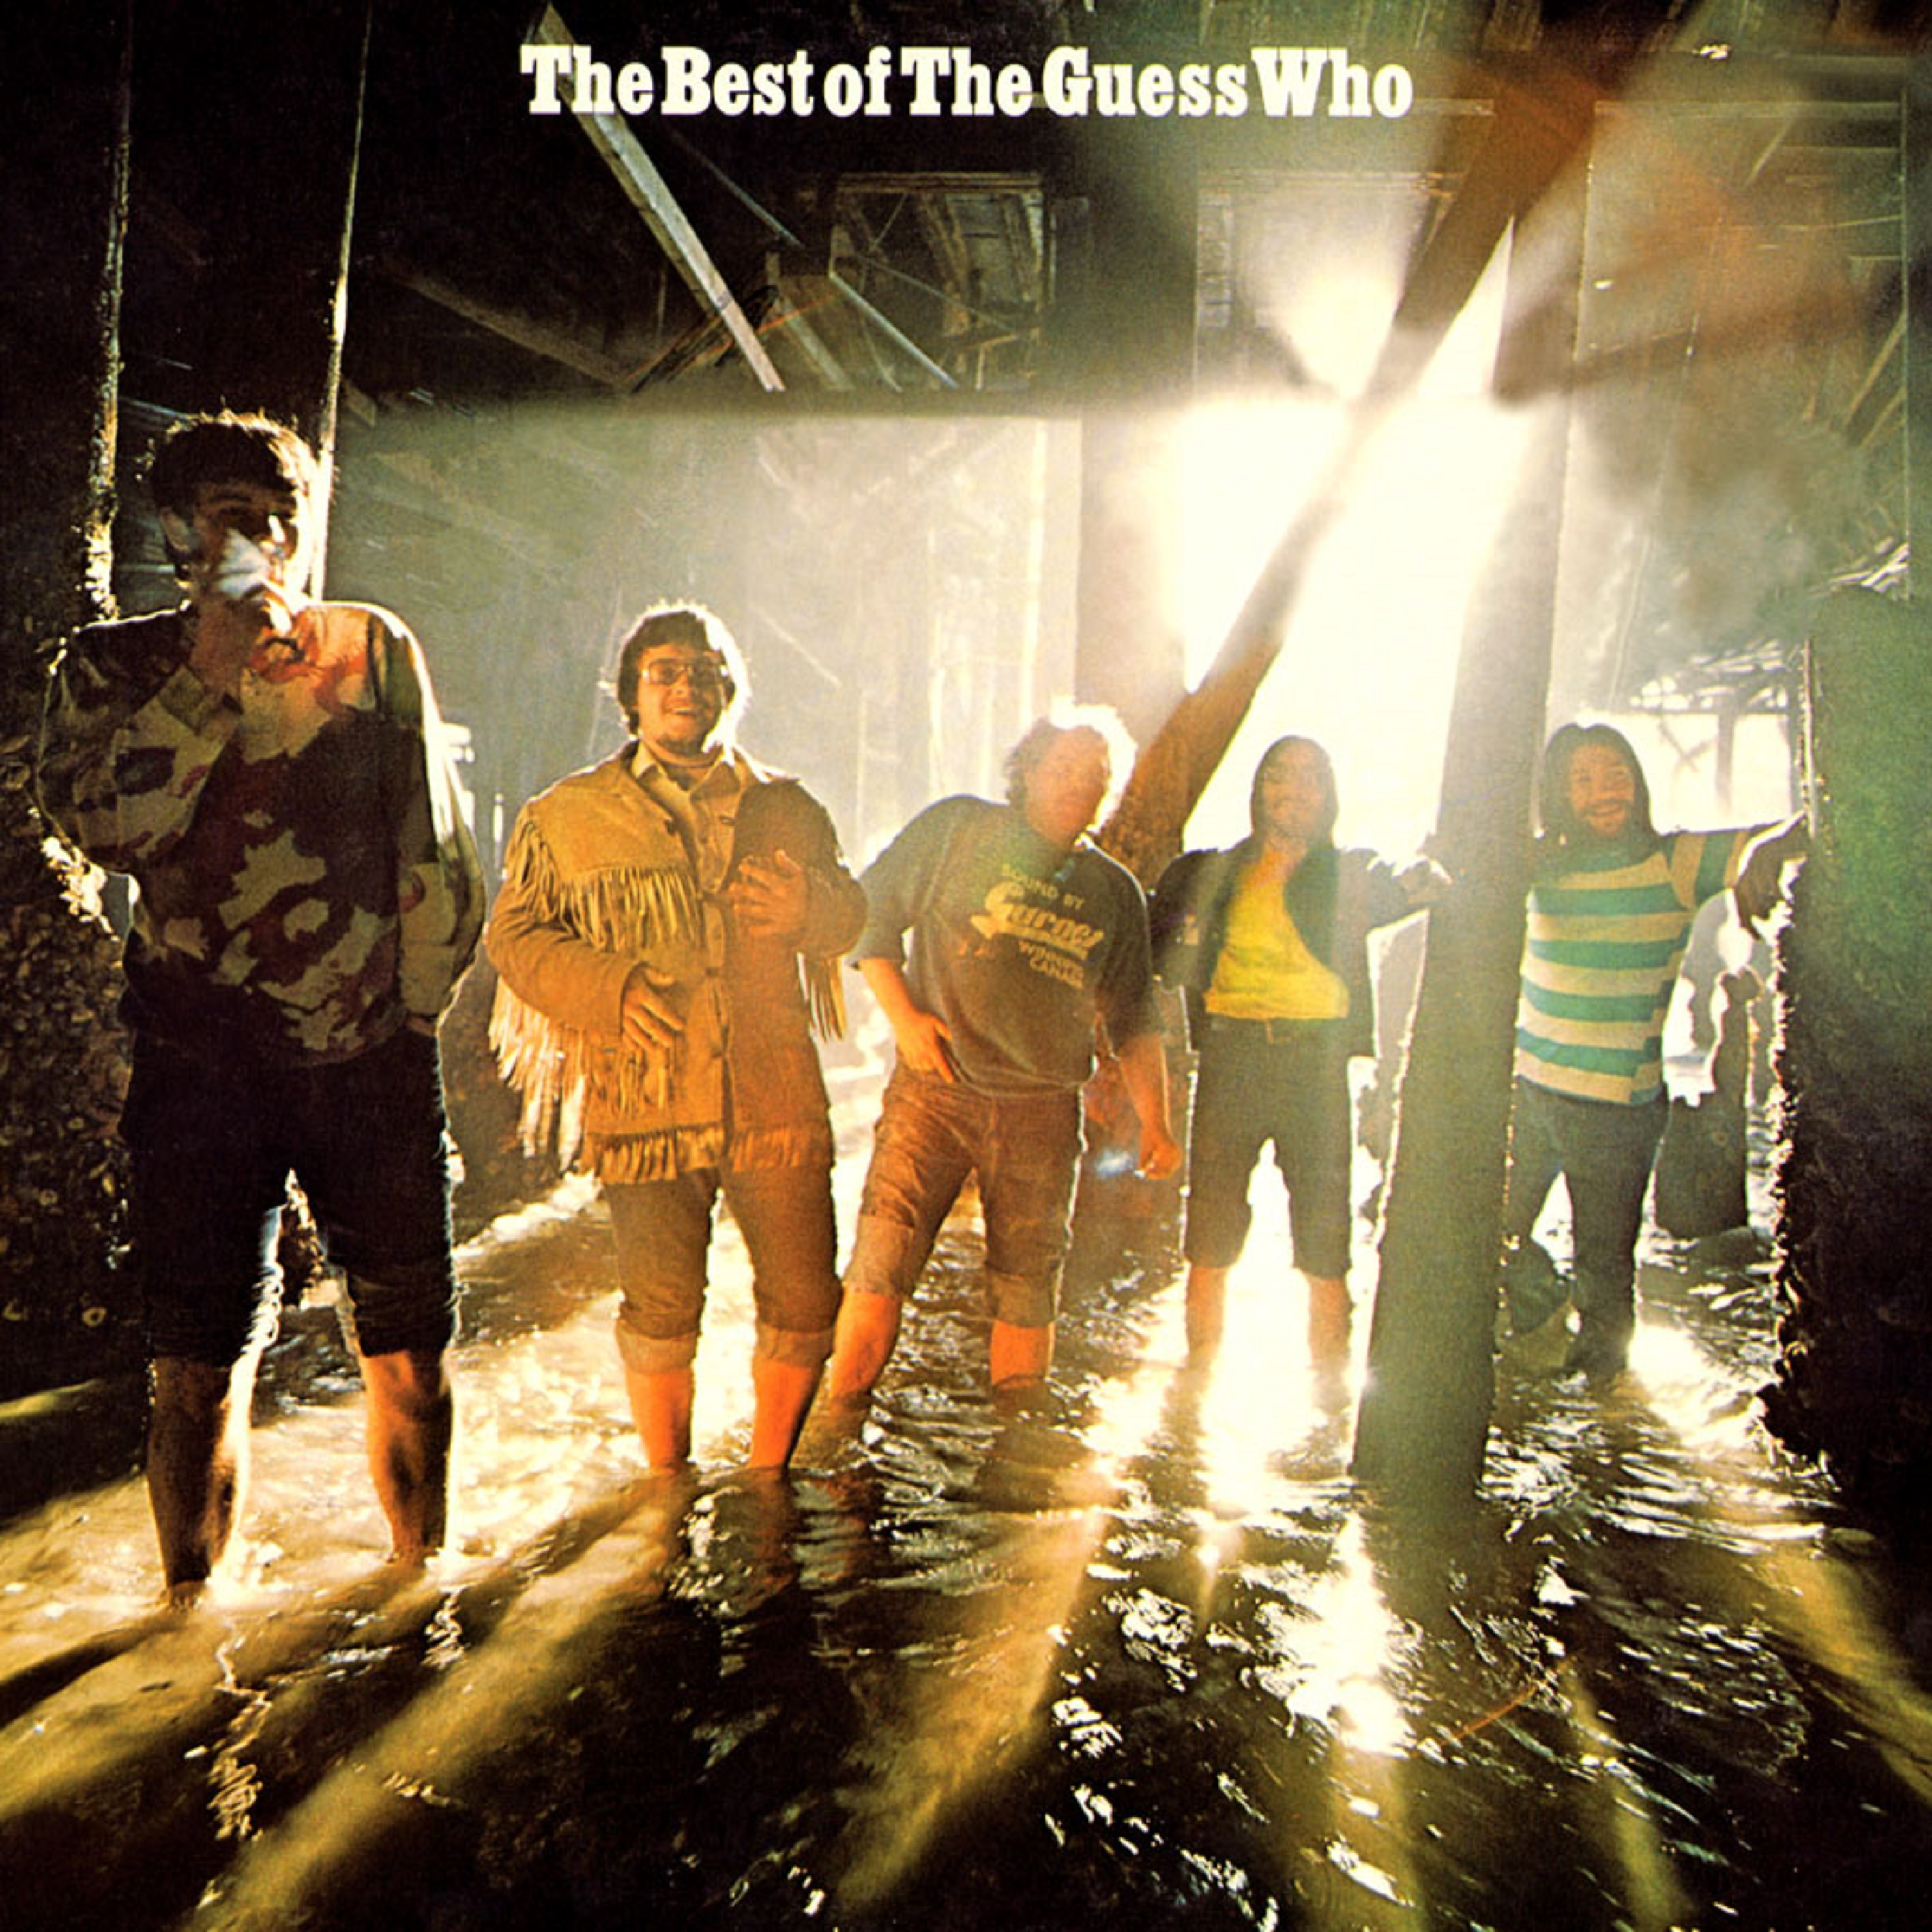 The Guess Who - The Best of The Guess Who (180 Gram Red & Orange Vinyl / Limited Edition / Gatefold Cover)